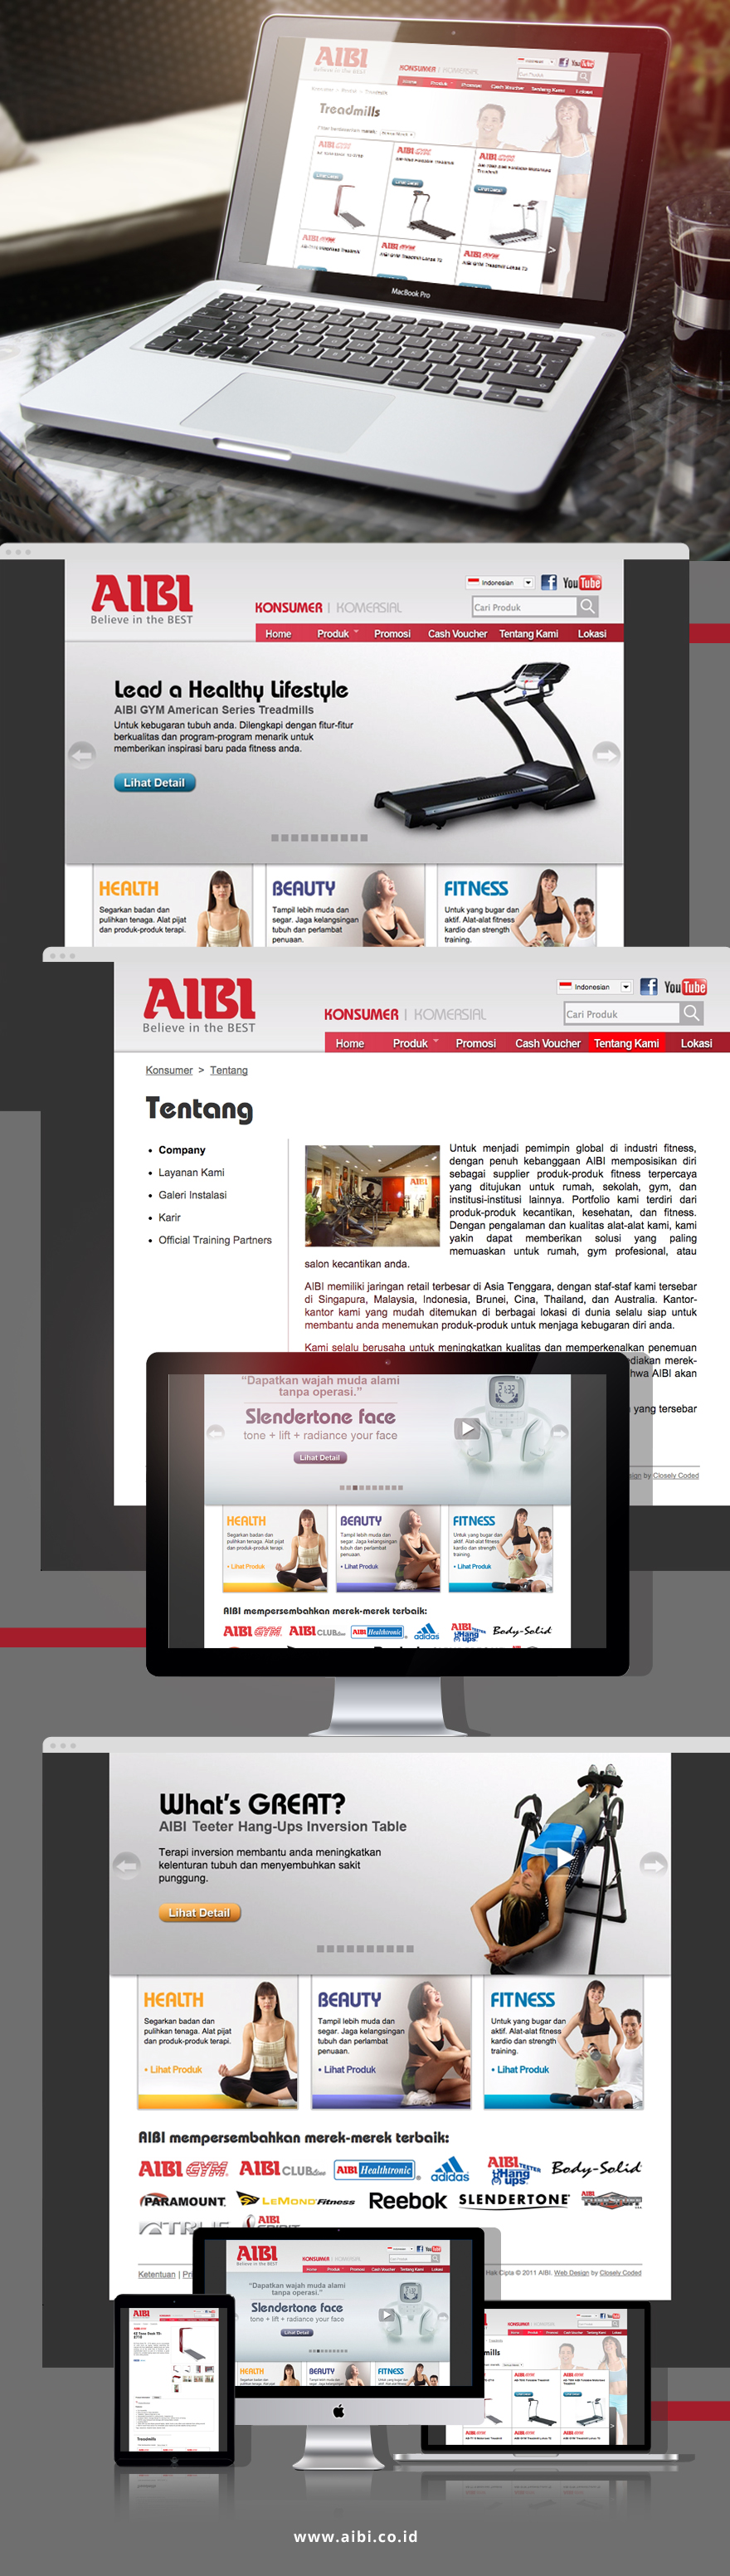 Projects - AIBI Fitness